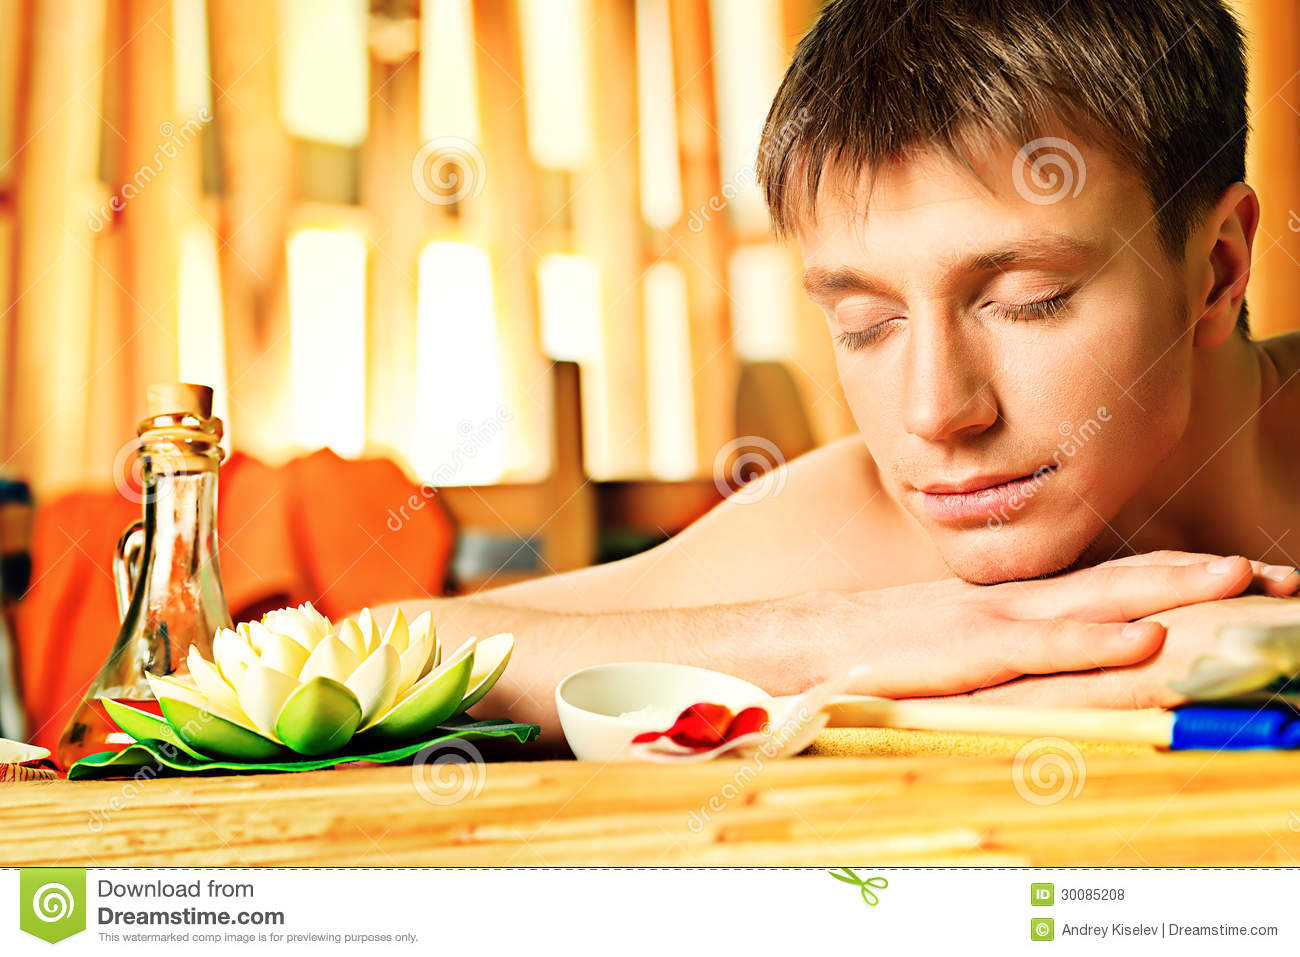 Body care royalty free stock photos image 30085208 for Salon younga